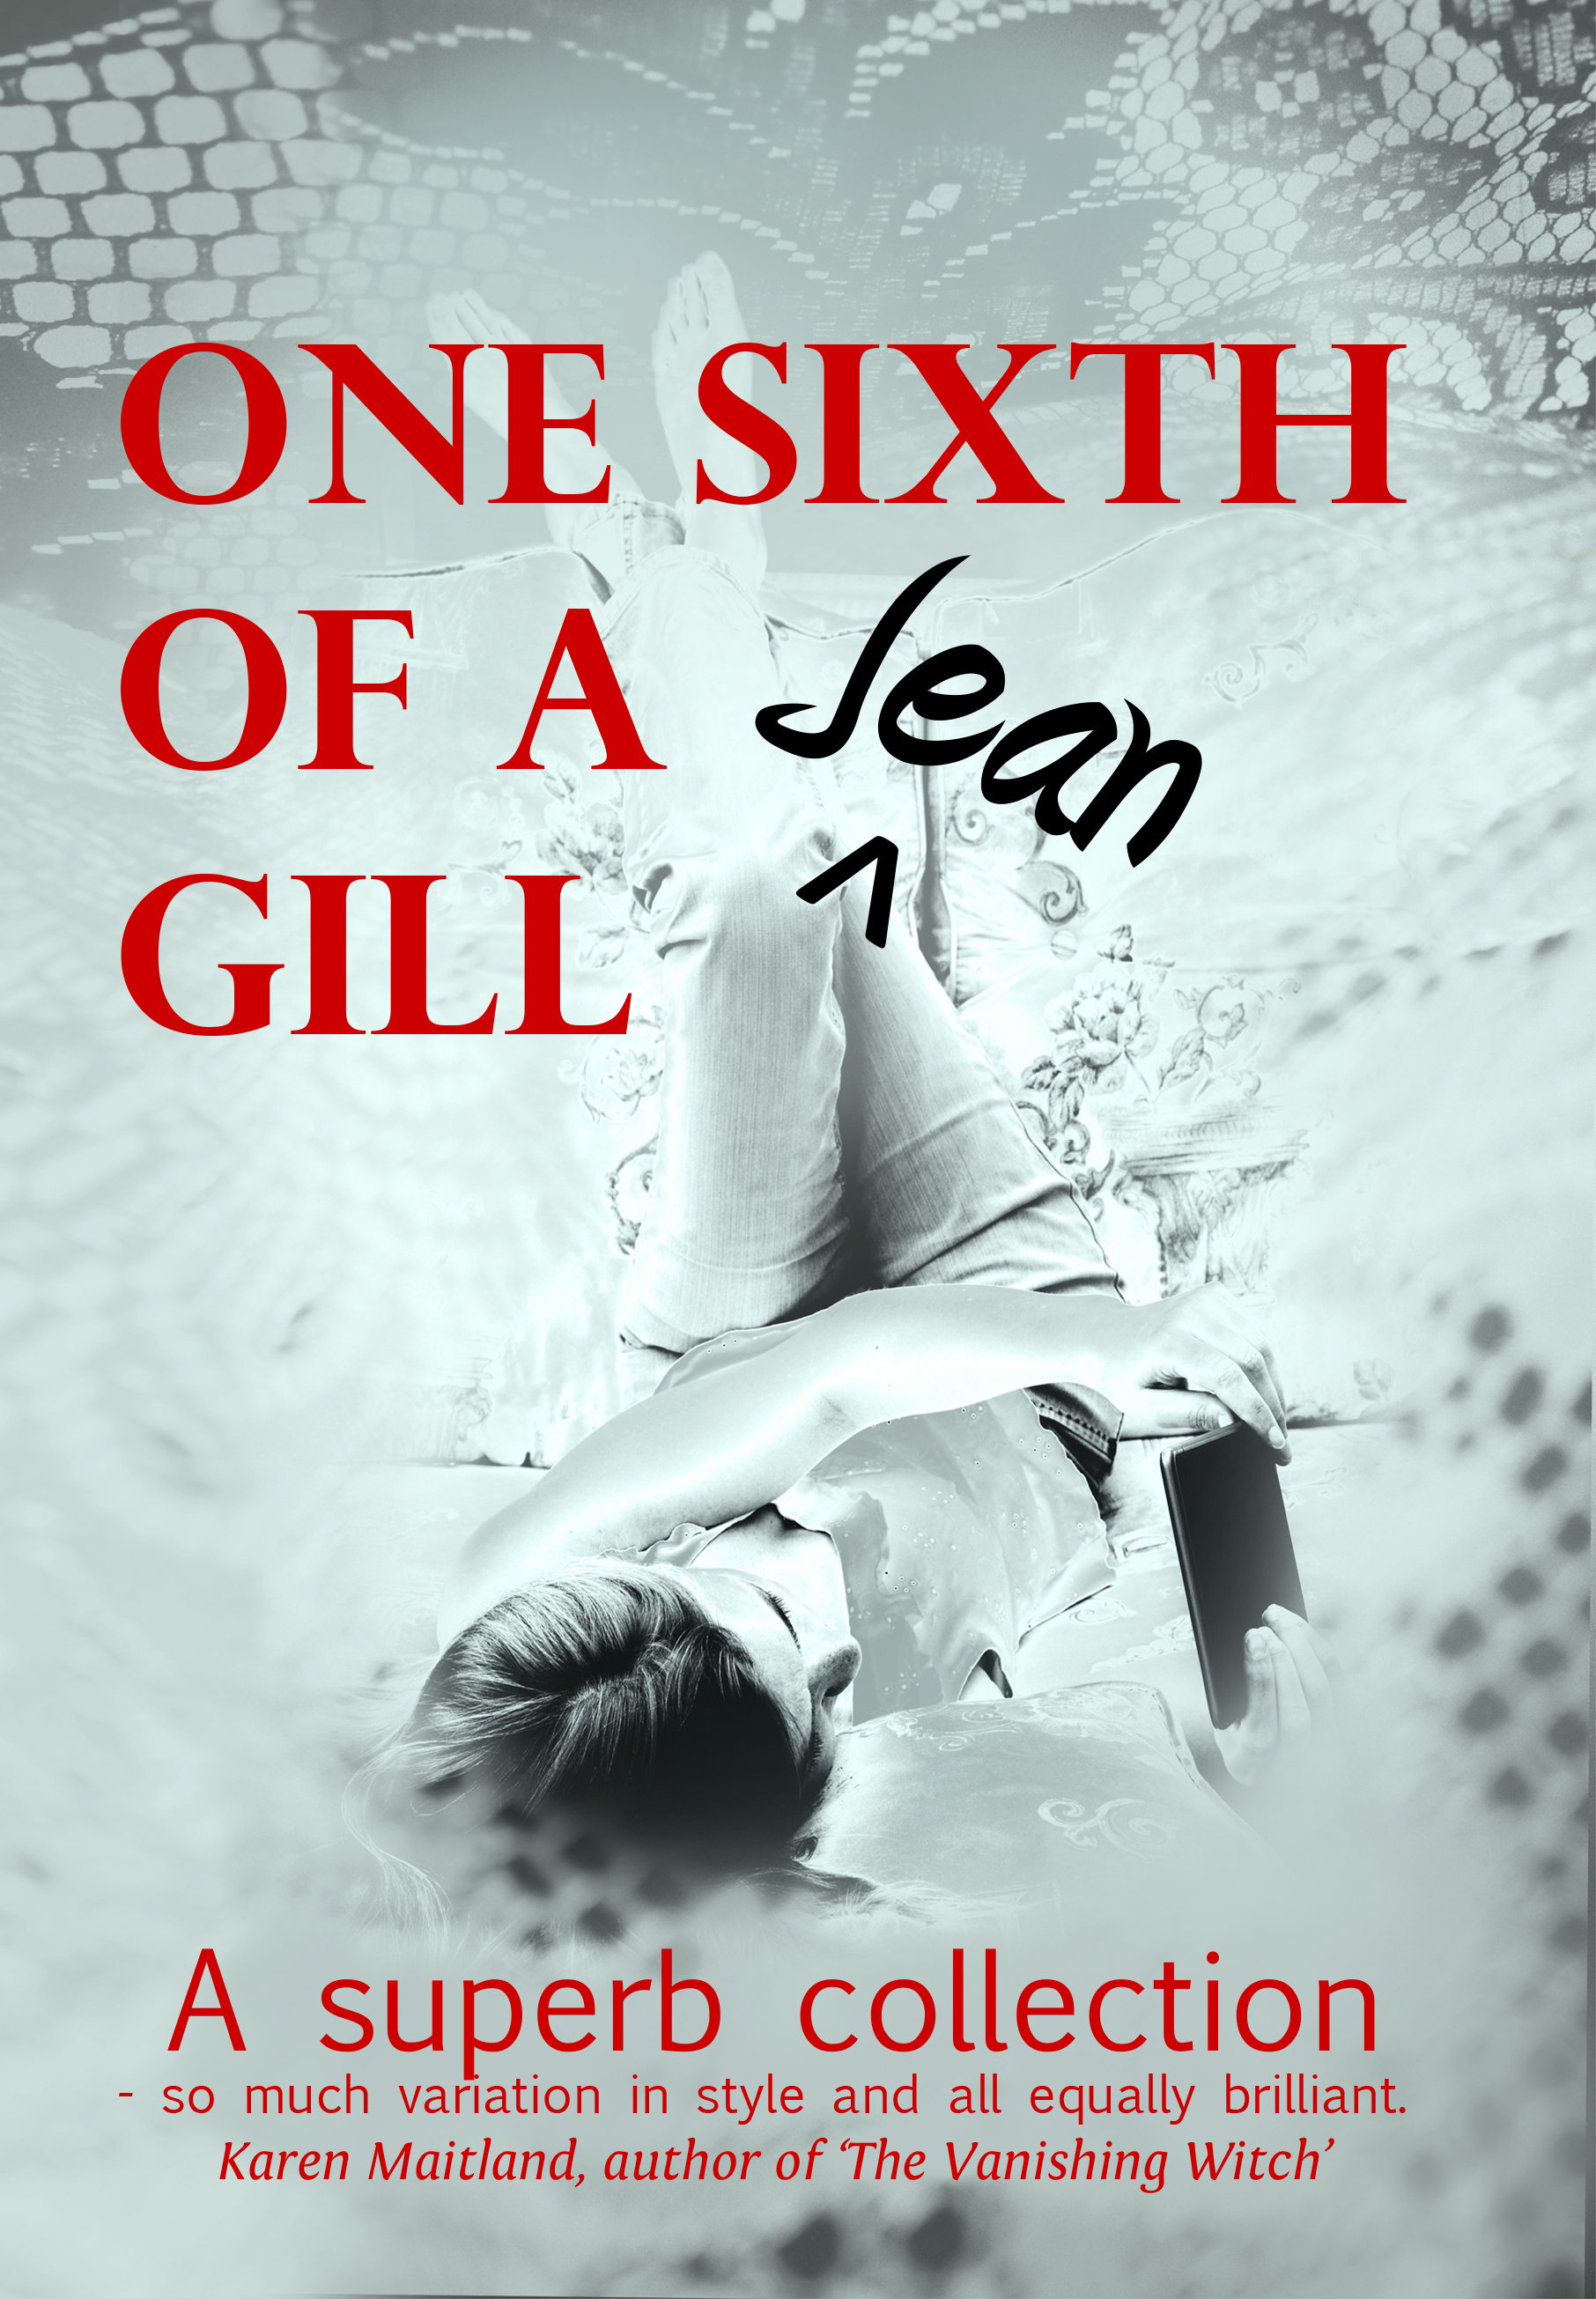 One Sixth of a Gill by Jean Gill